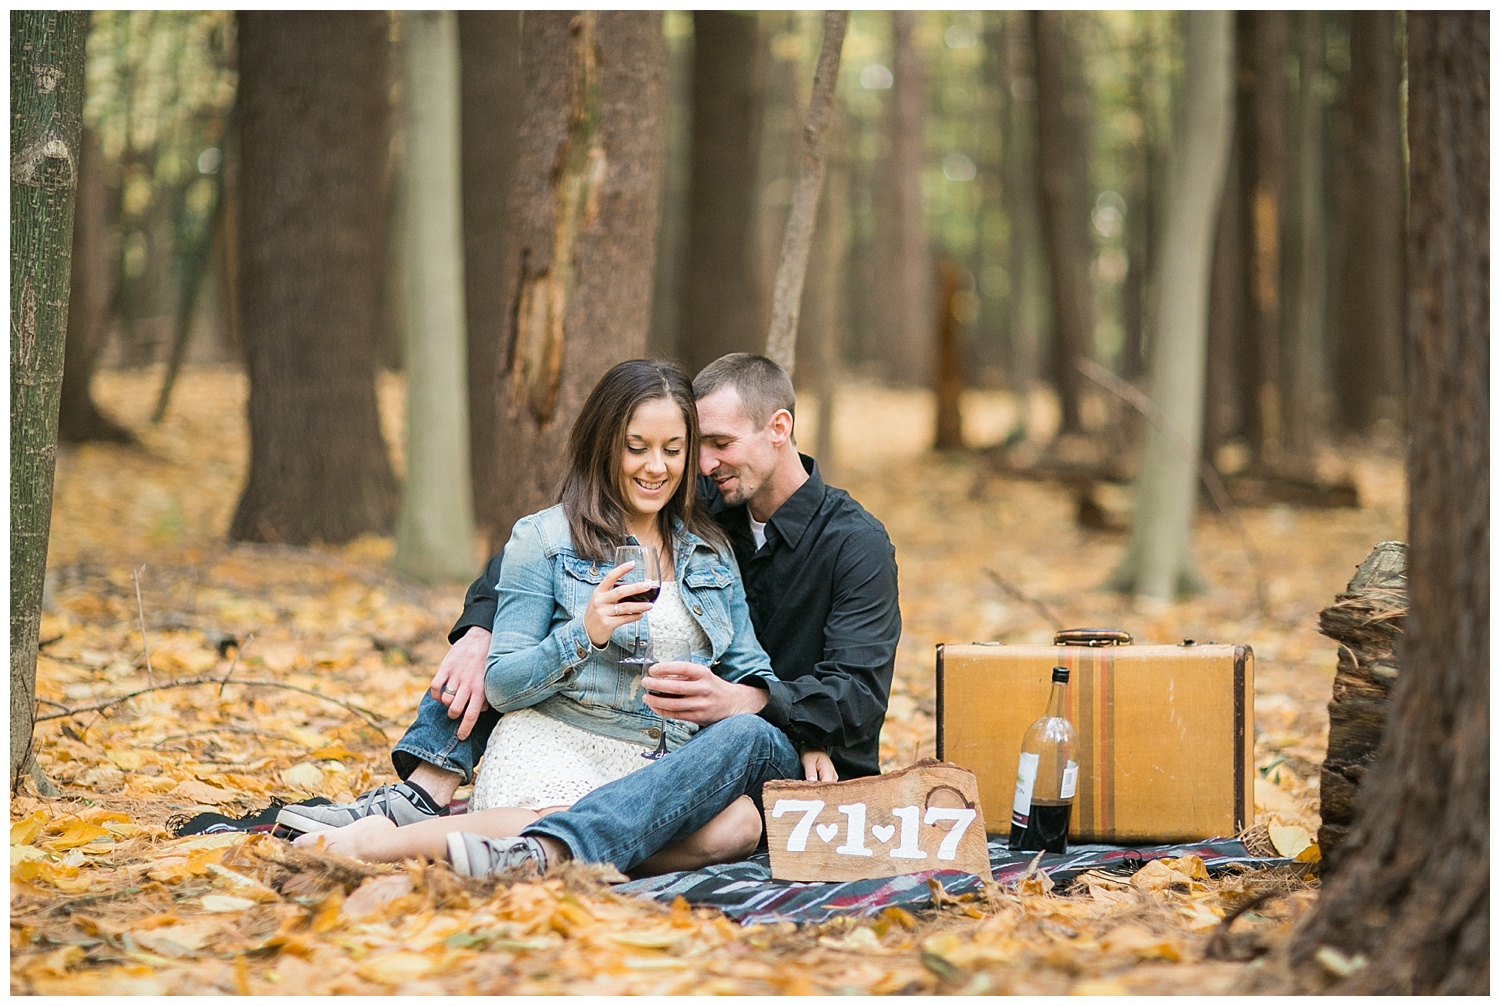 Gina and Tony - Engagement session - letchworth state park - lass and beau_0550.jpg